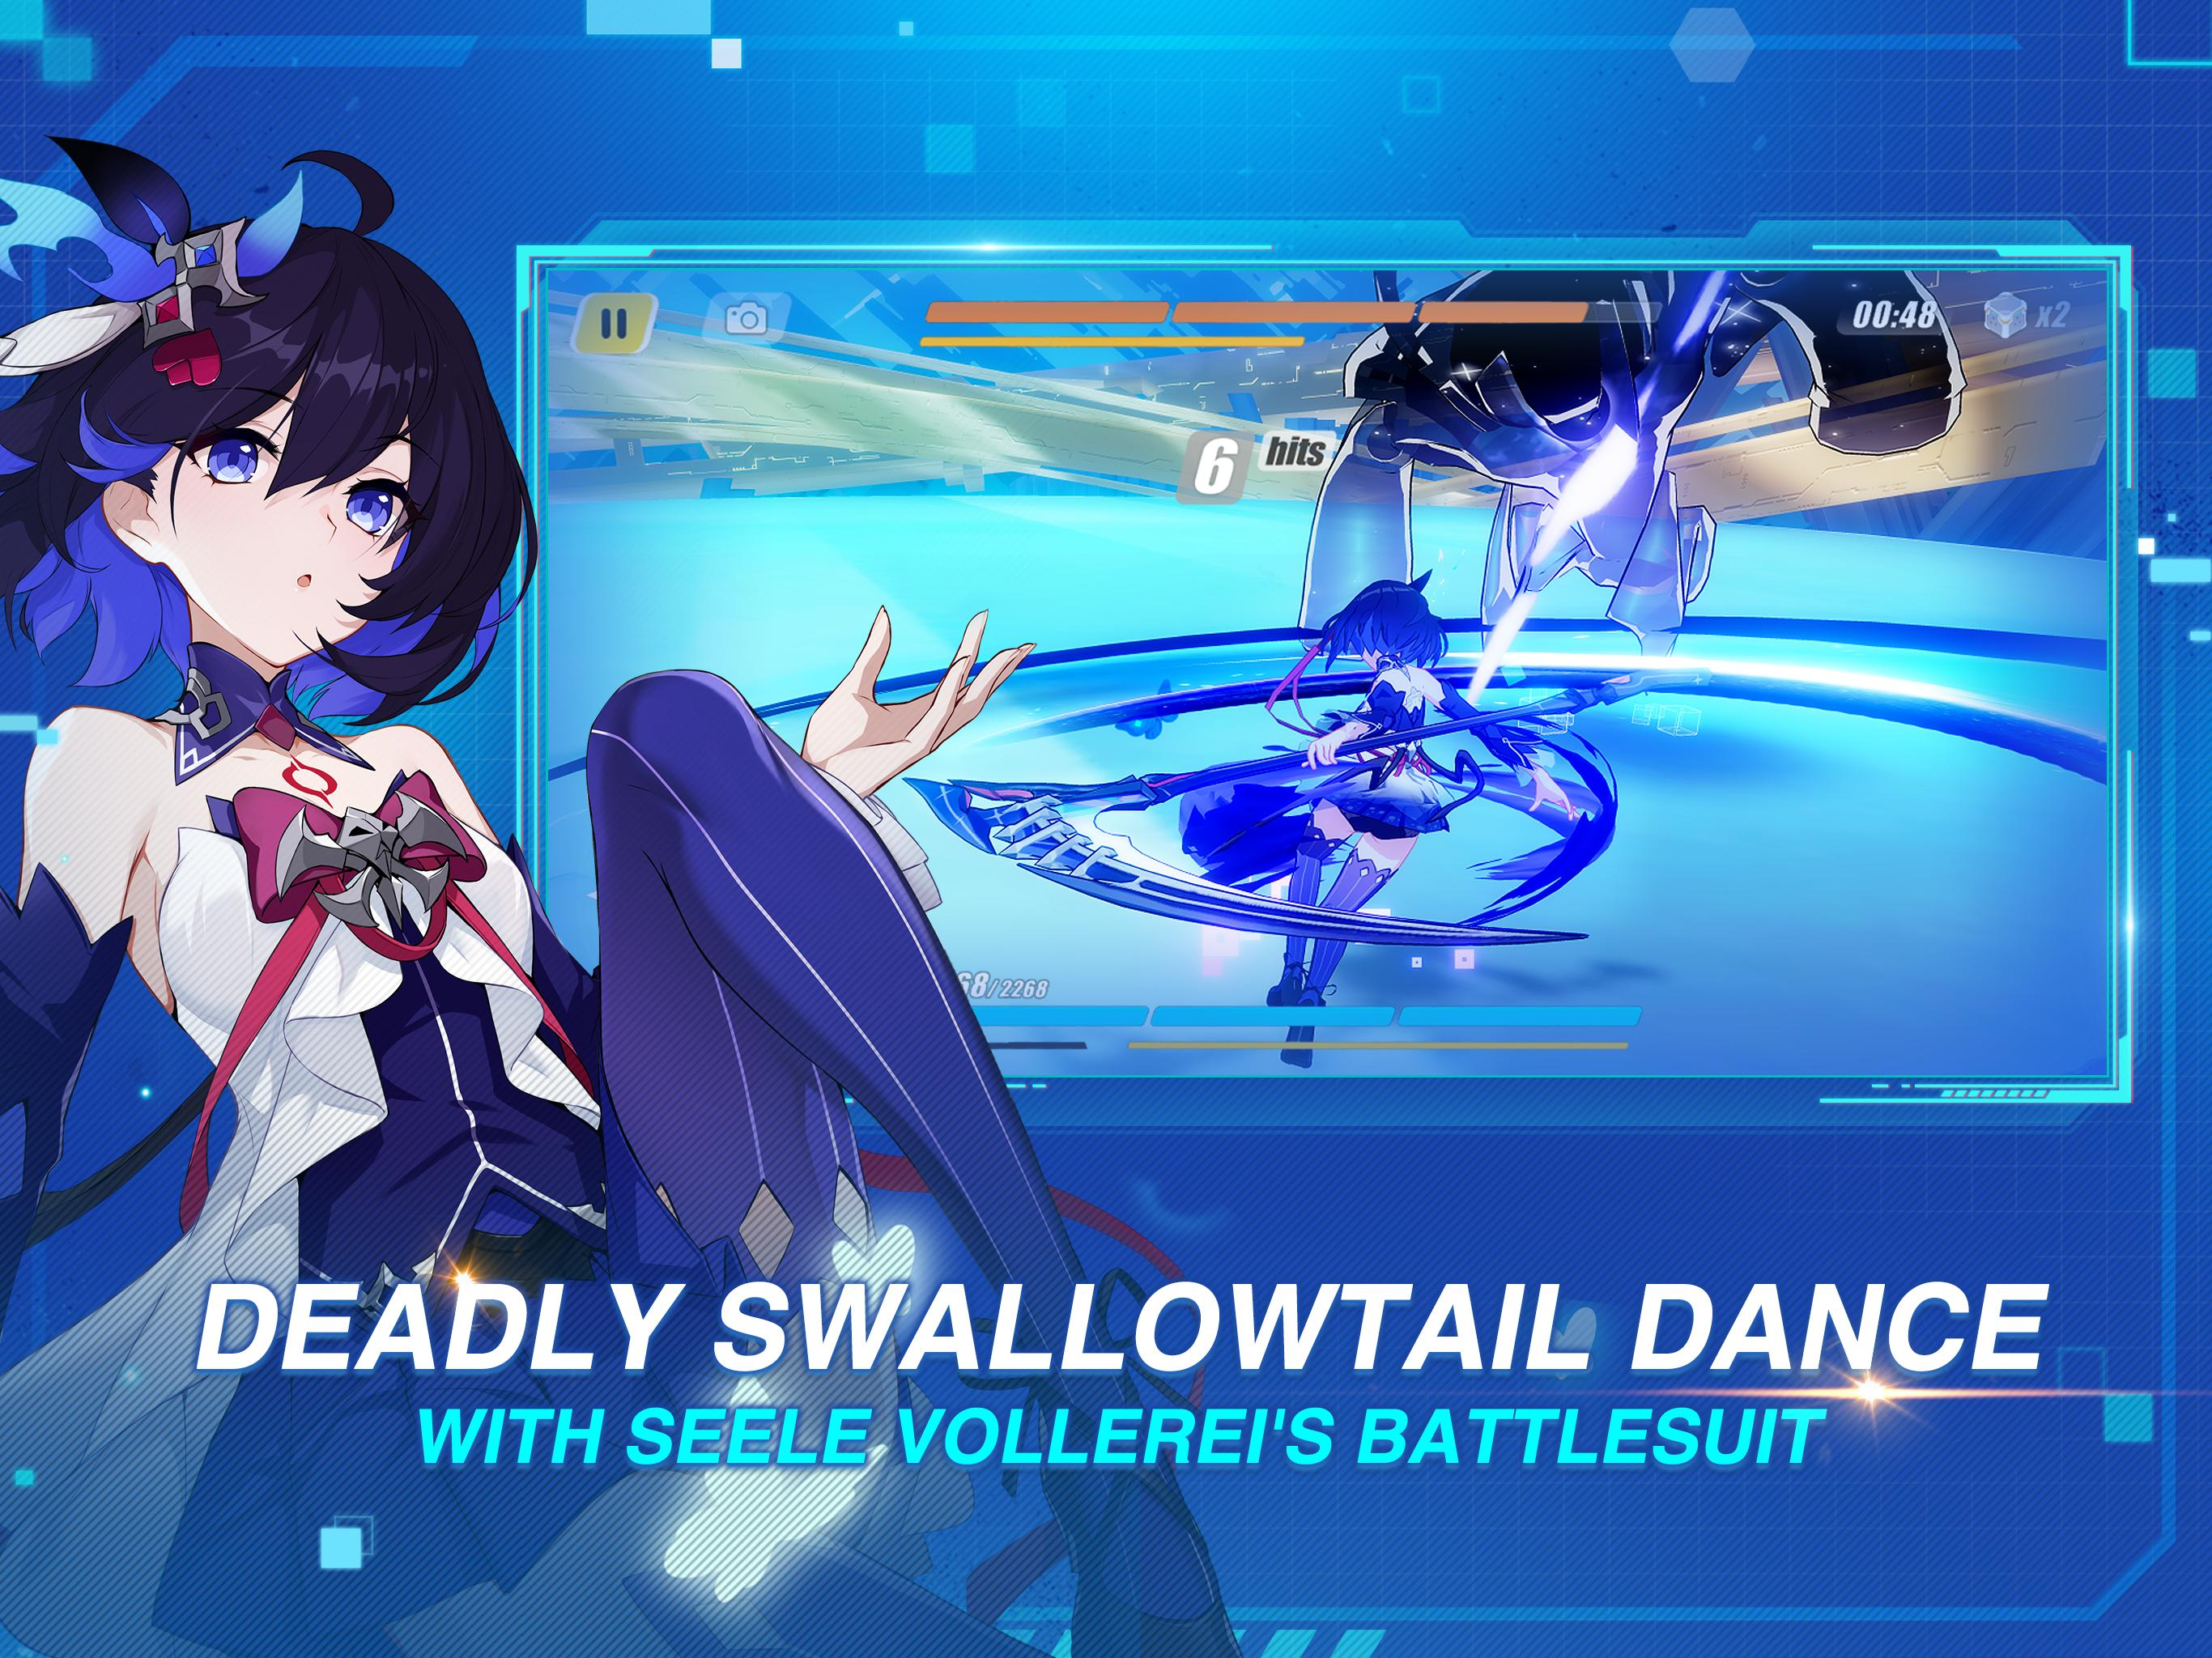 Honkai Impact 3 for Android - APK Download